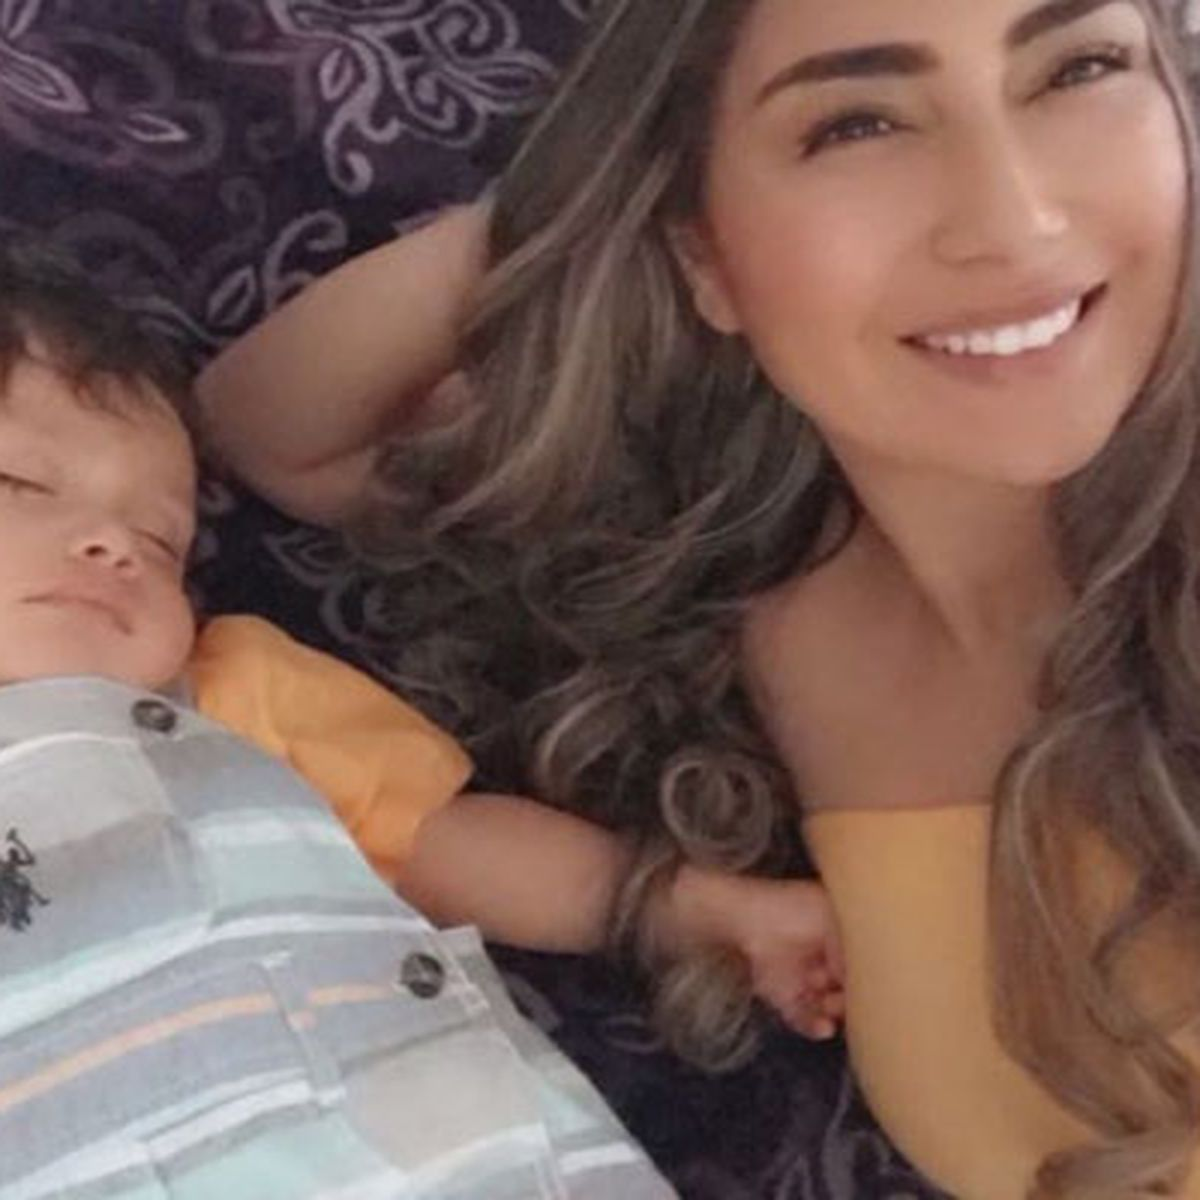 Angry Woman Coughed On 1 Year Old S Face At Calif Restaurant Mother Says